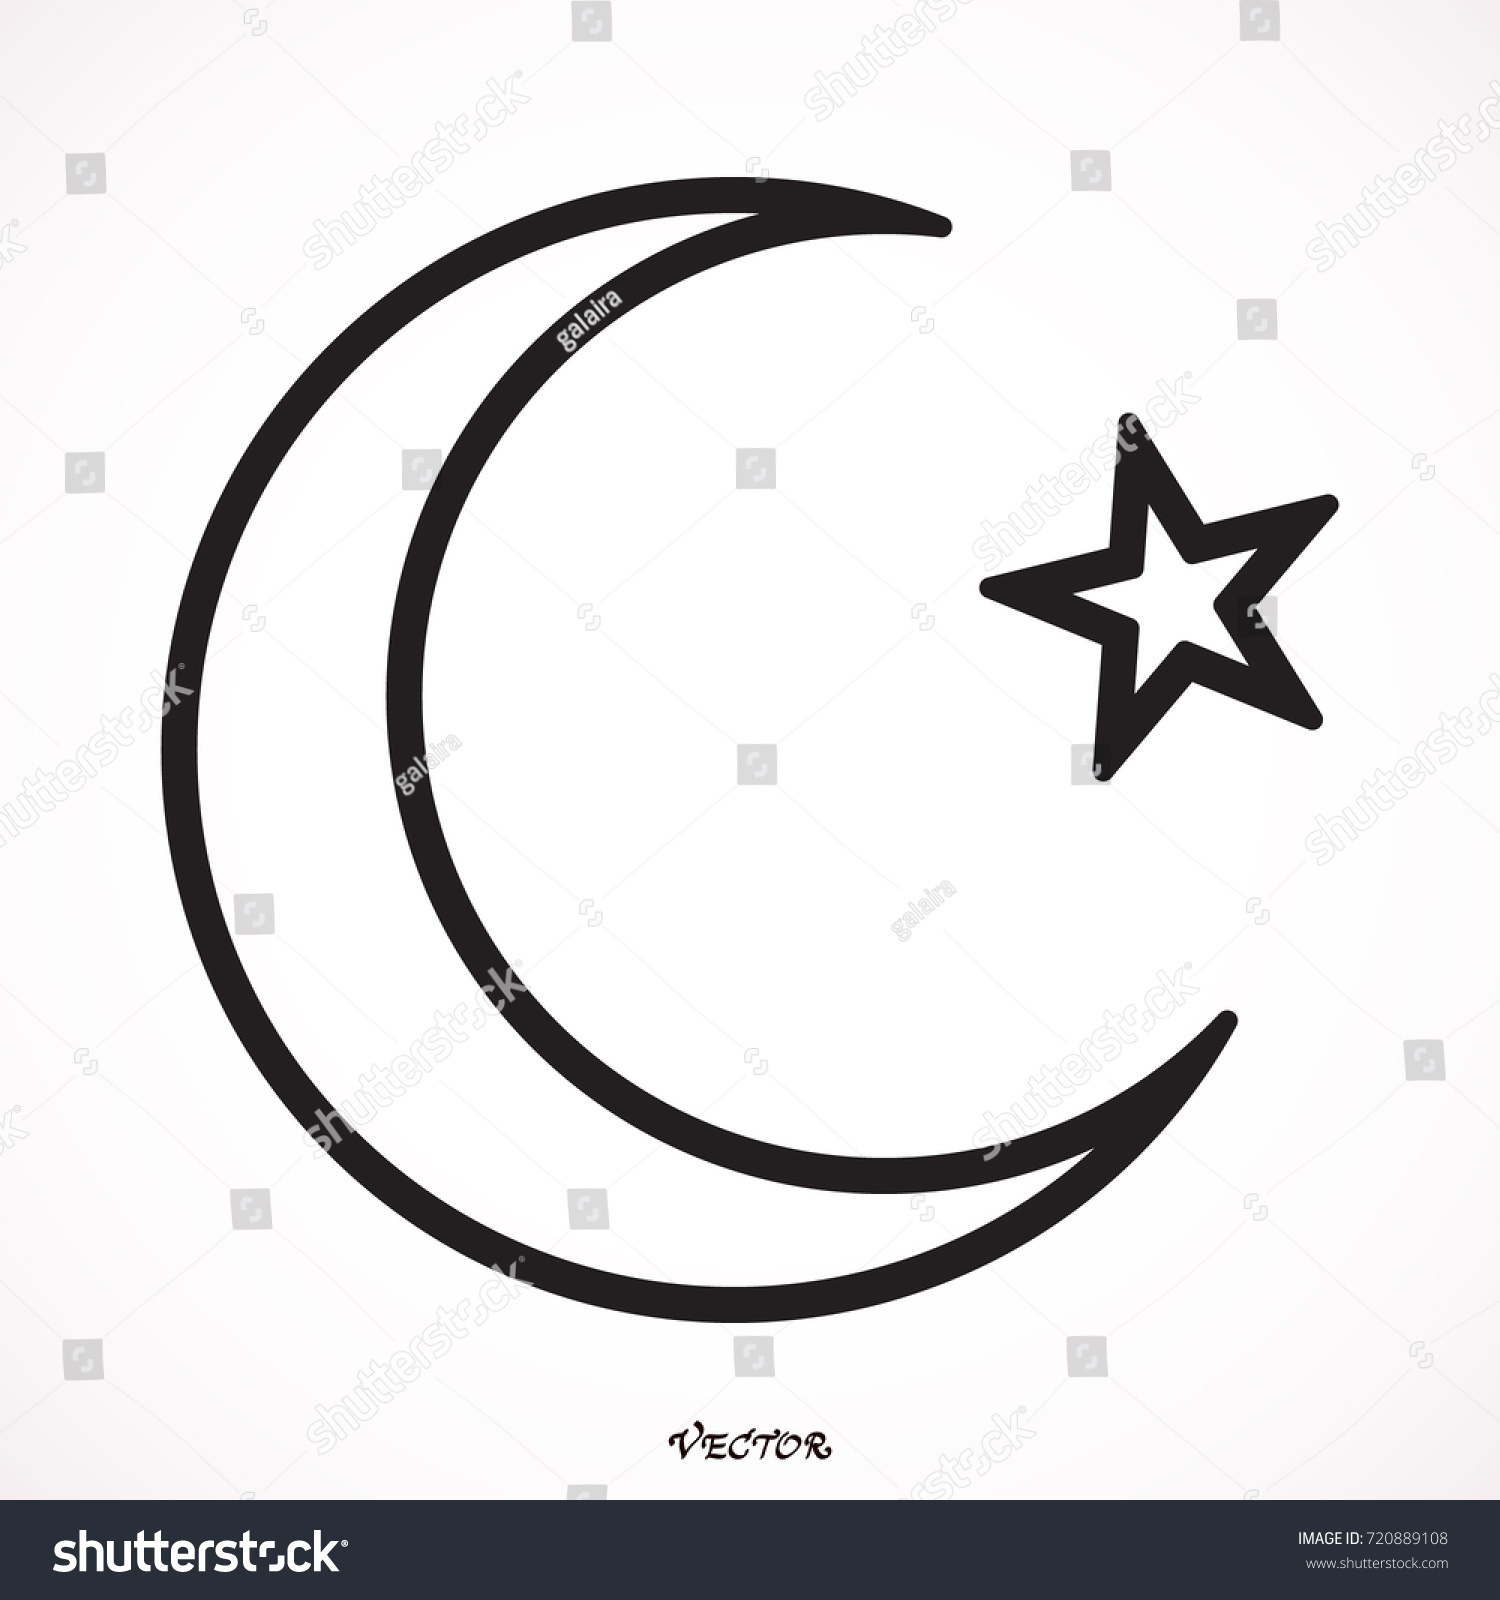 Islam symbol moon star icon isolated stock vector 720889108 islam symbol moon and star icon isolated on white background biocorpaavc Images